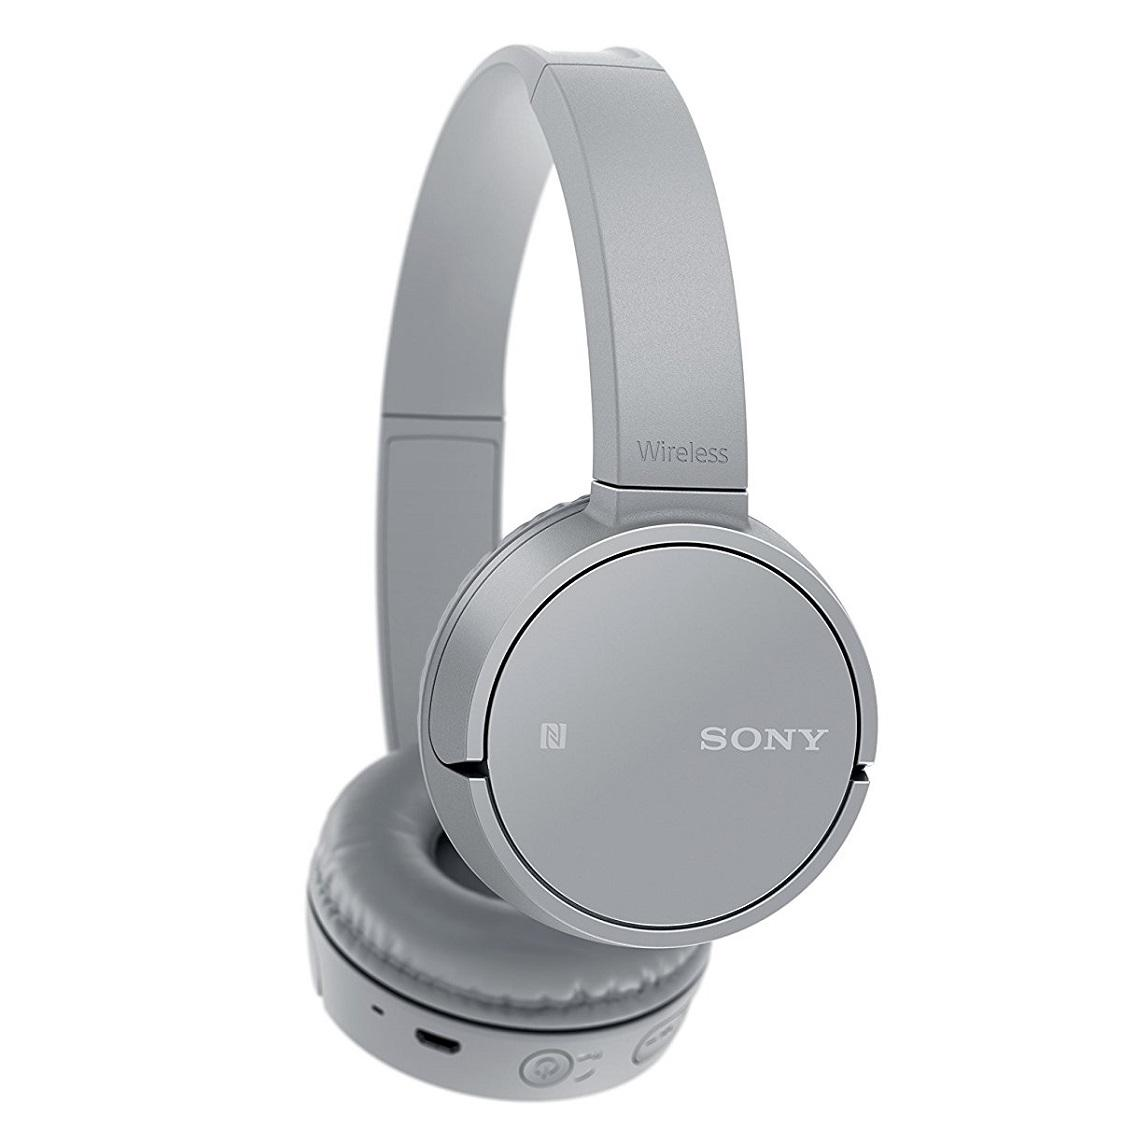 Detail Gambar Sony MDR WH-CH500 / WH CH500 / CH 500 Wireless Headphones - Grey Terbaru